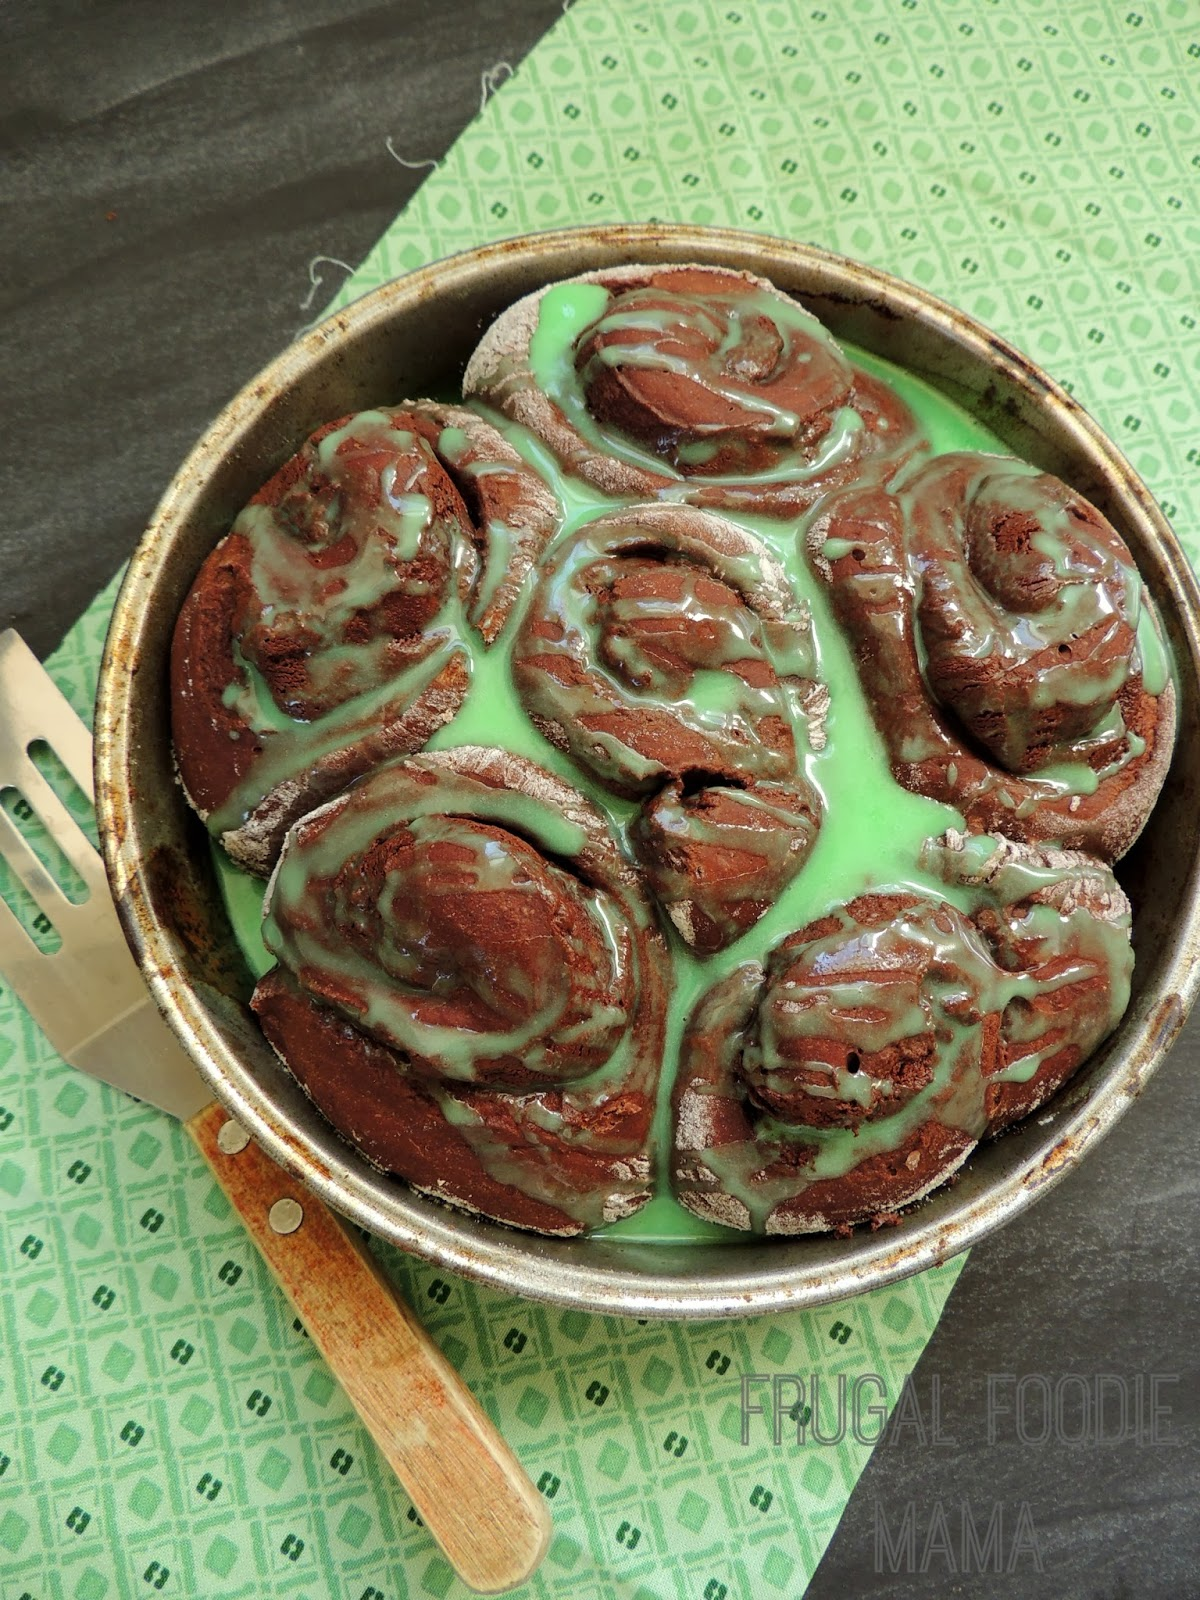 These cake mix Chocolate Mint Sweet Rolls are so rich and decadent that they can double as a breakfast & dessert.